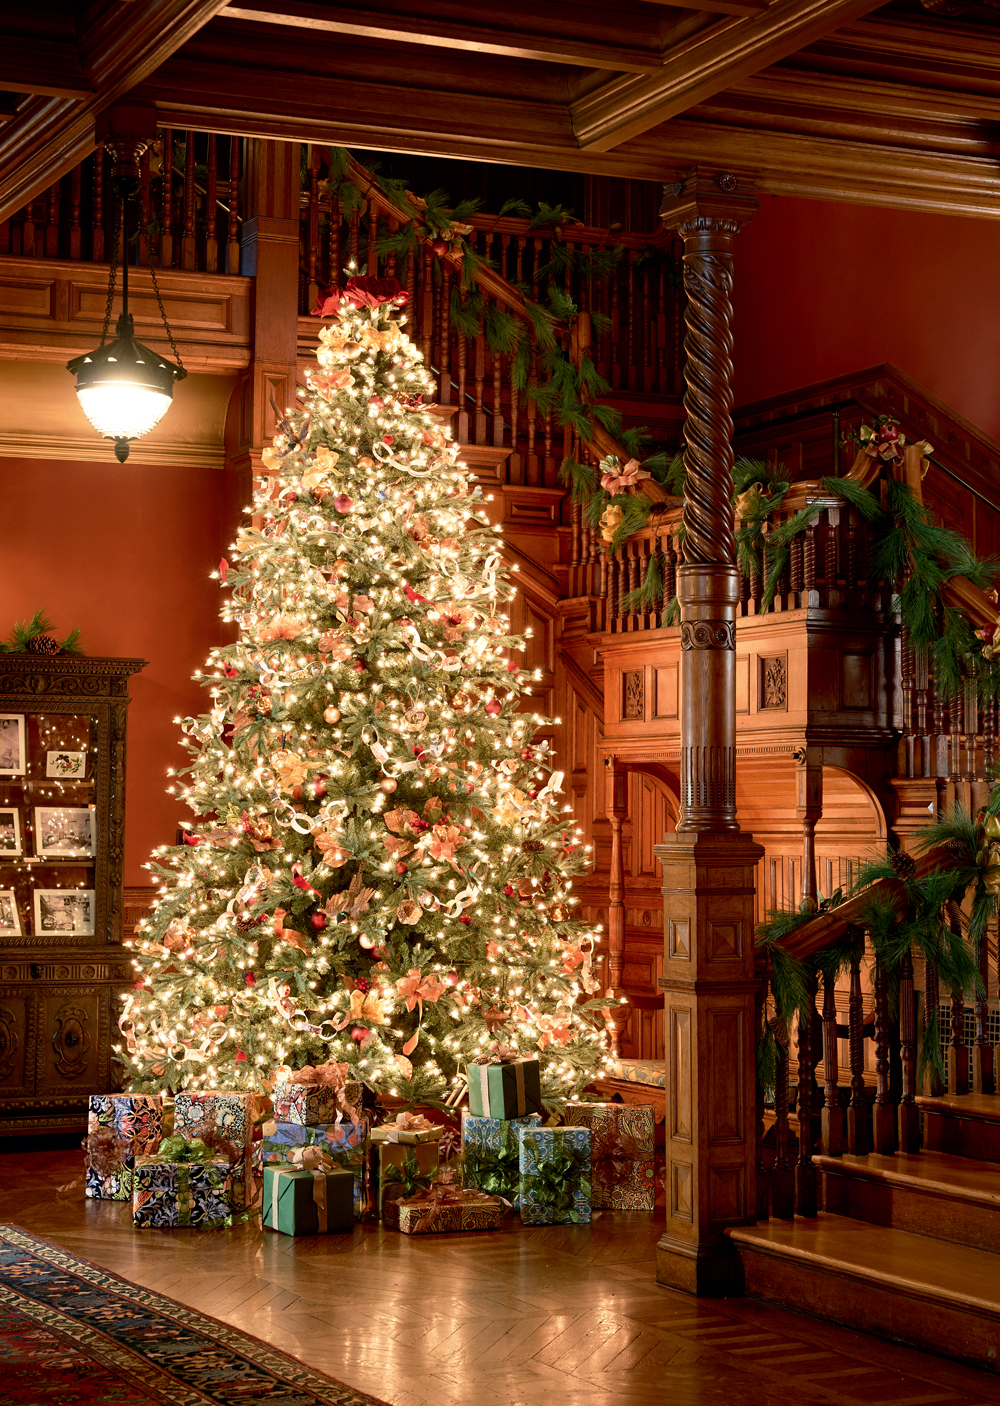 The Houses Main Christmas Tree Festooned With Victorian Style Handmade Paper Decorations And A Fanciful Flock Of Bird Ornaments